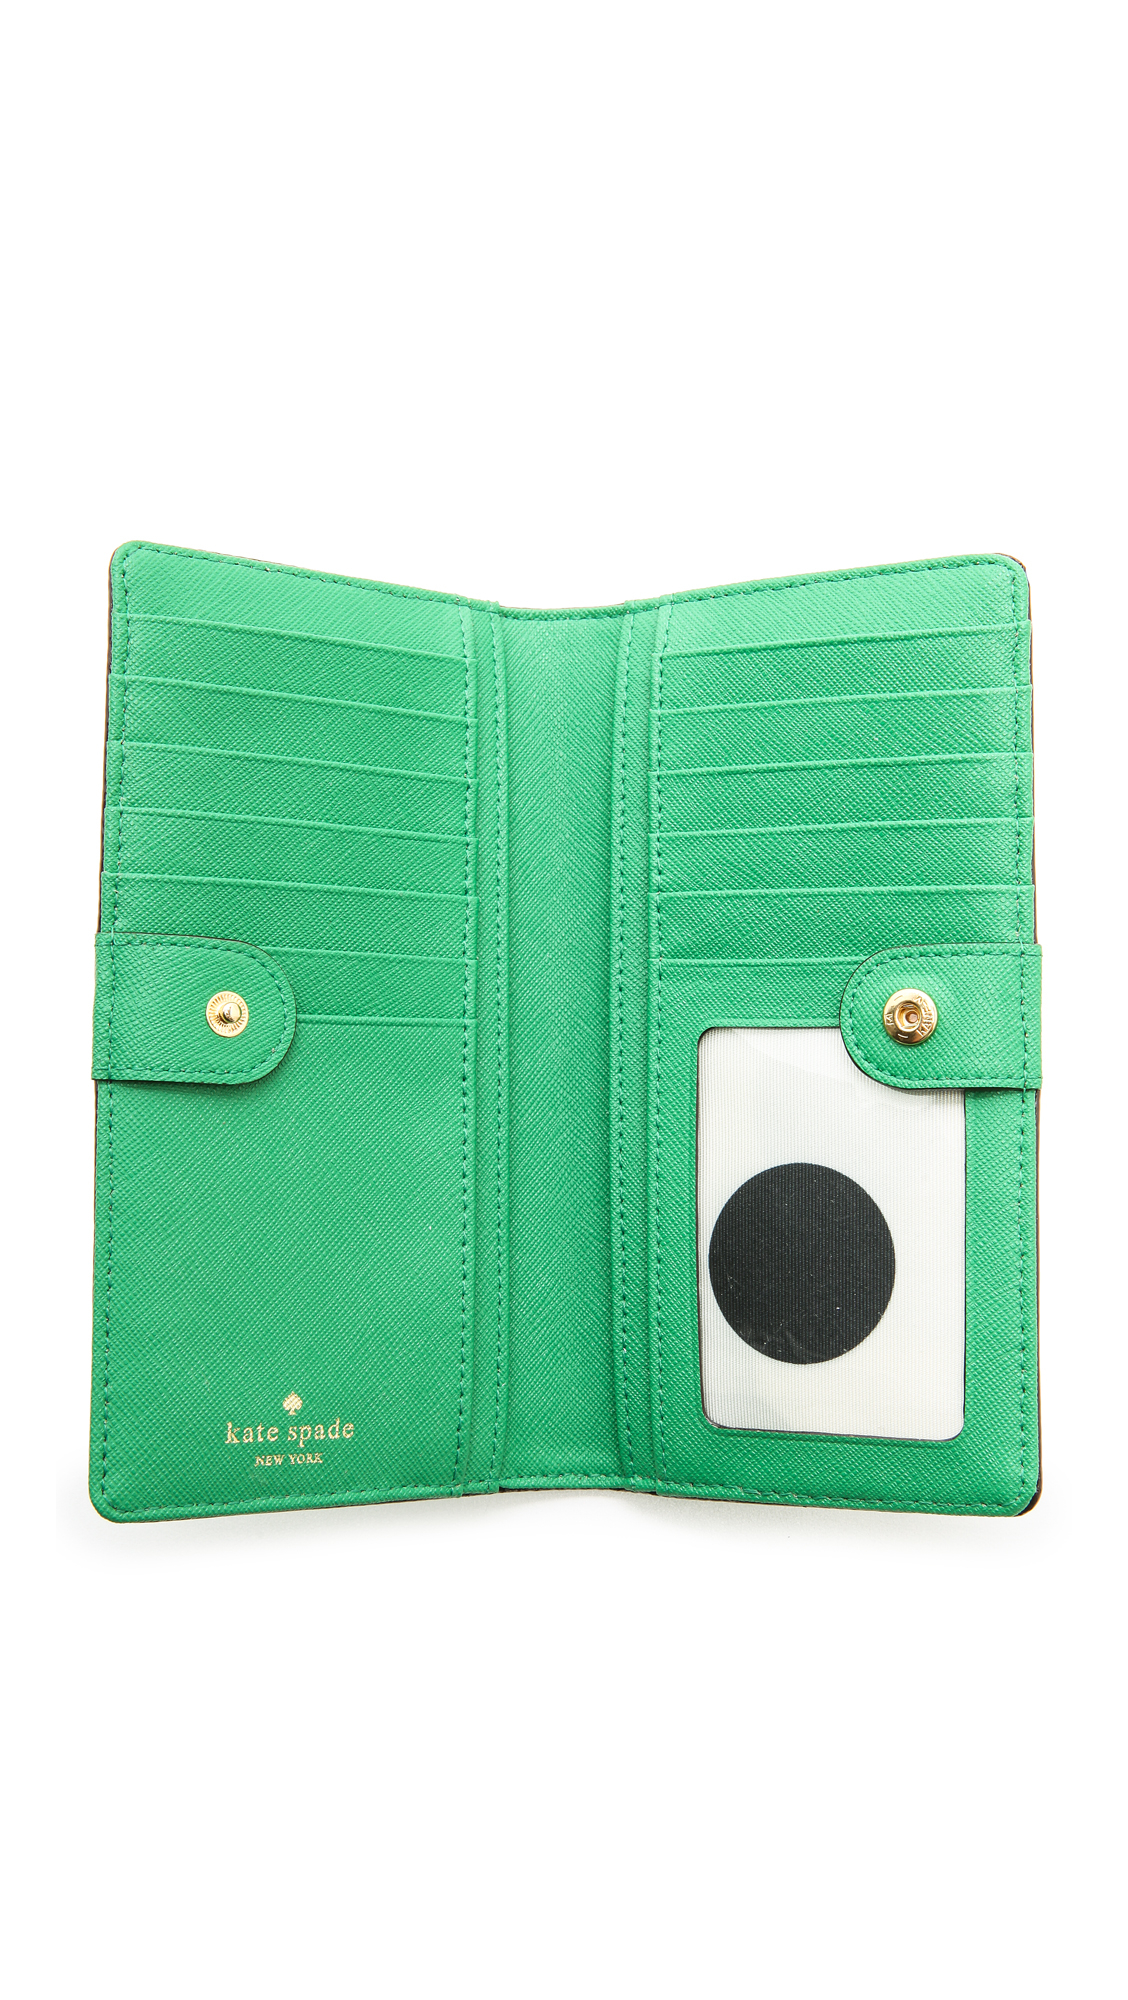 Kate Spade Stacy Continental Wallet in Green - Lyst